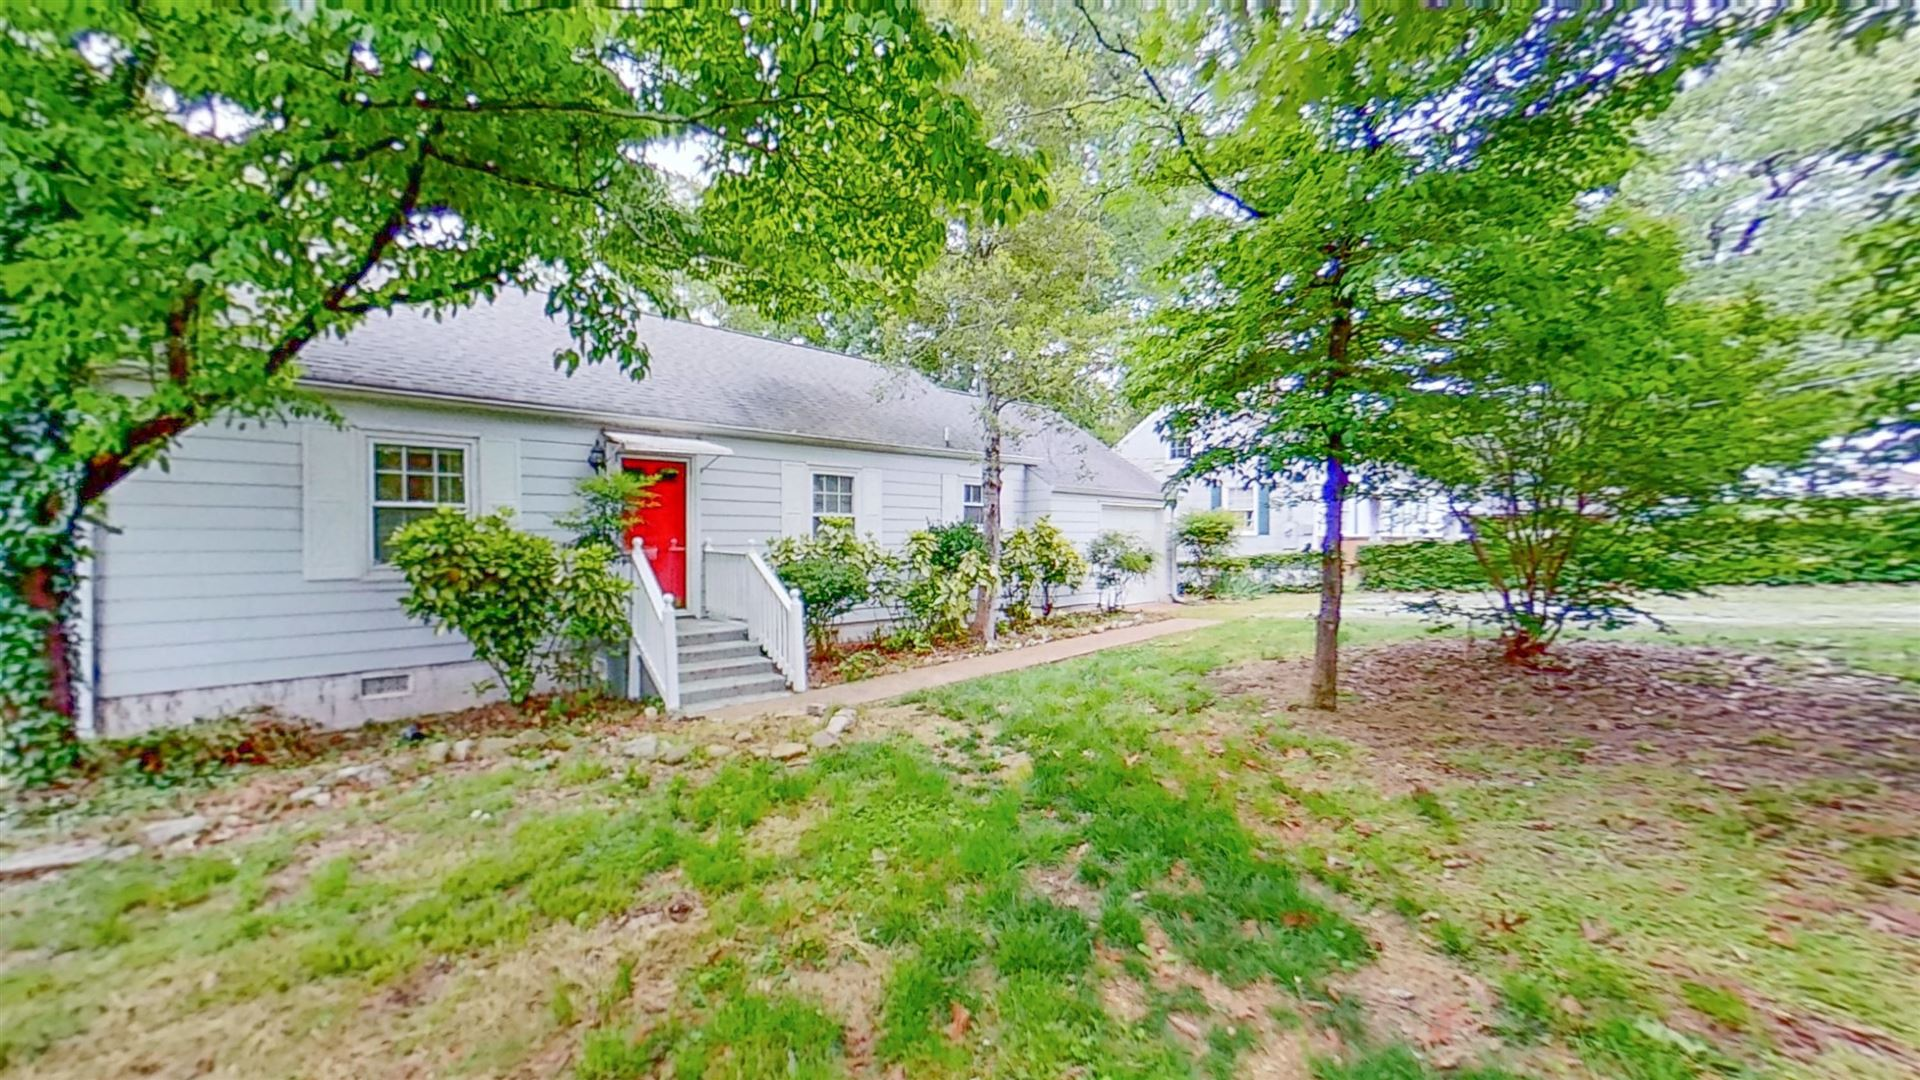 109 Bales Ave, Chattanooga, TN 37412 - #: 1317582